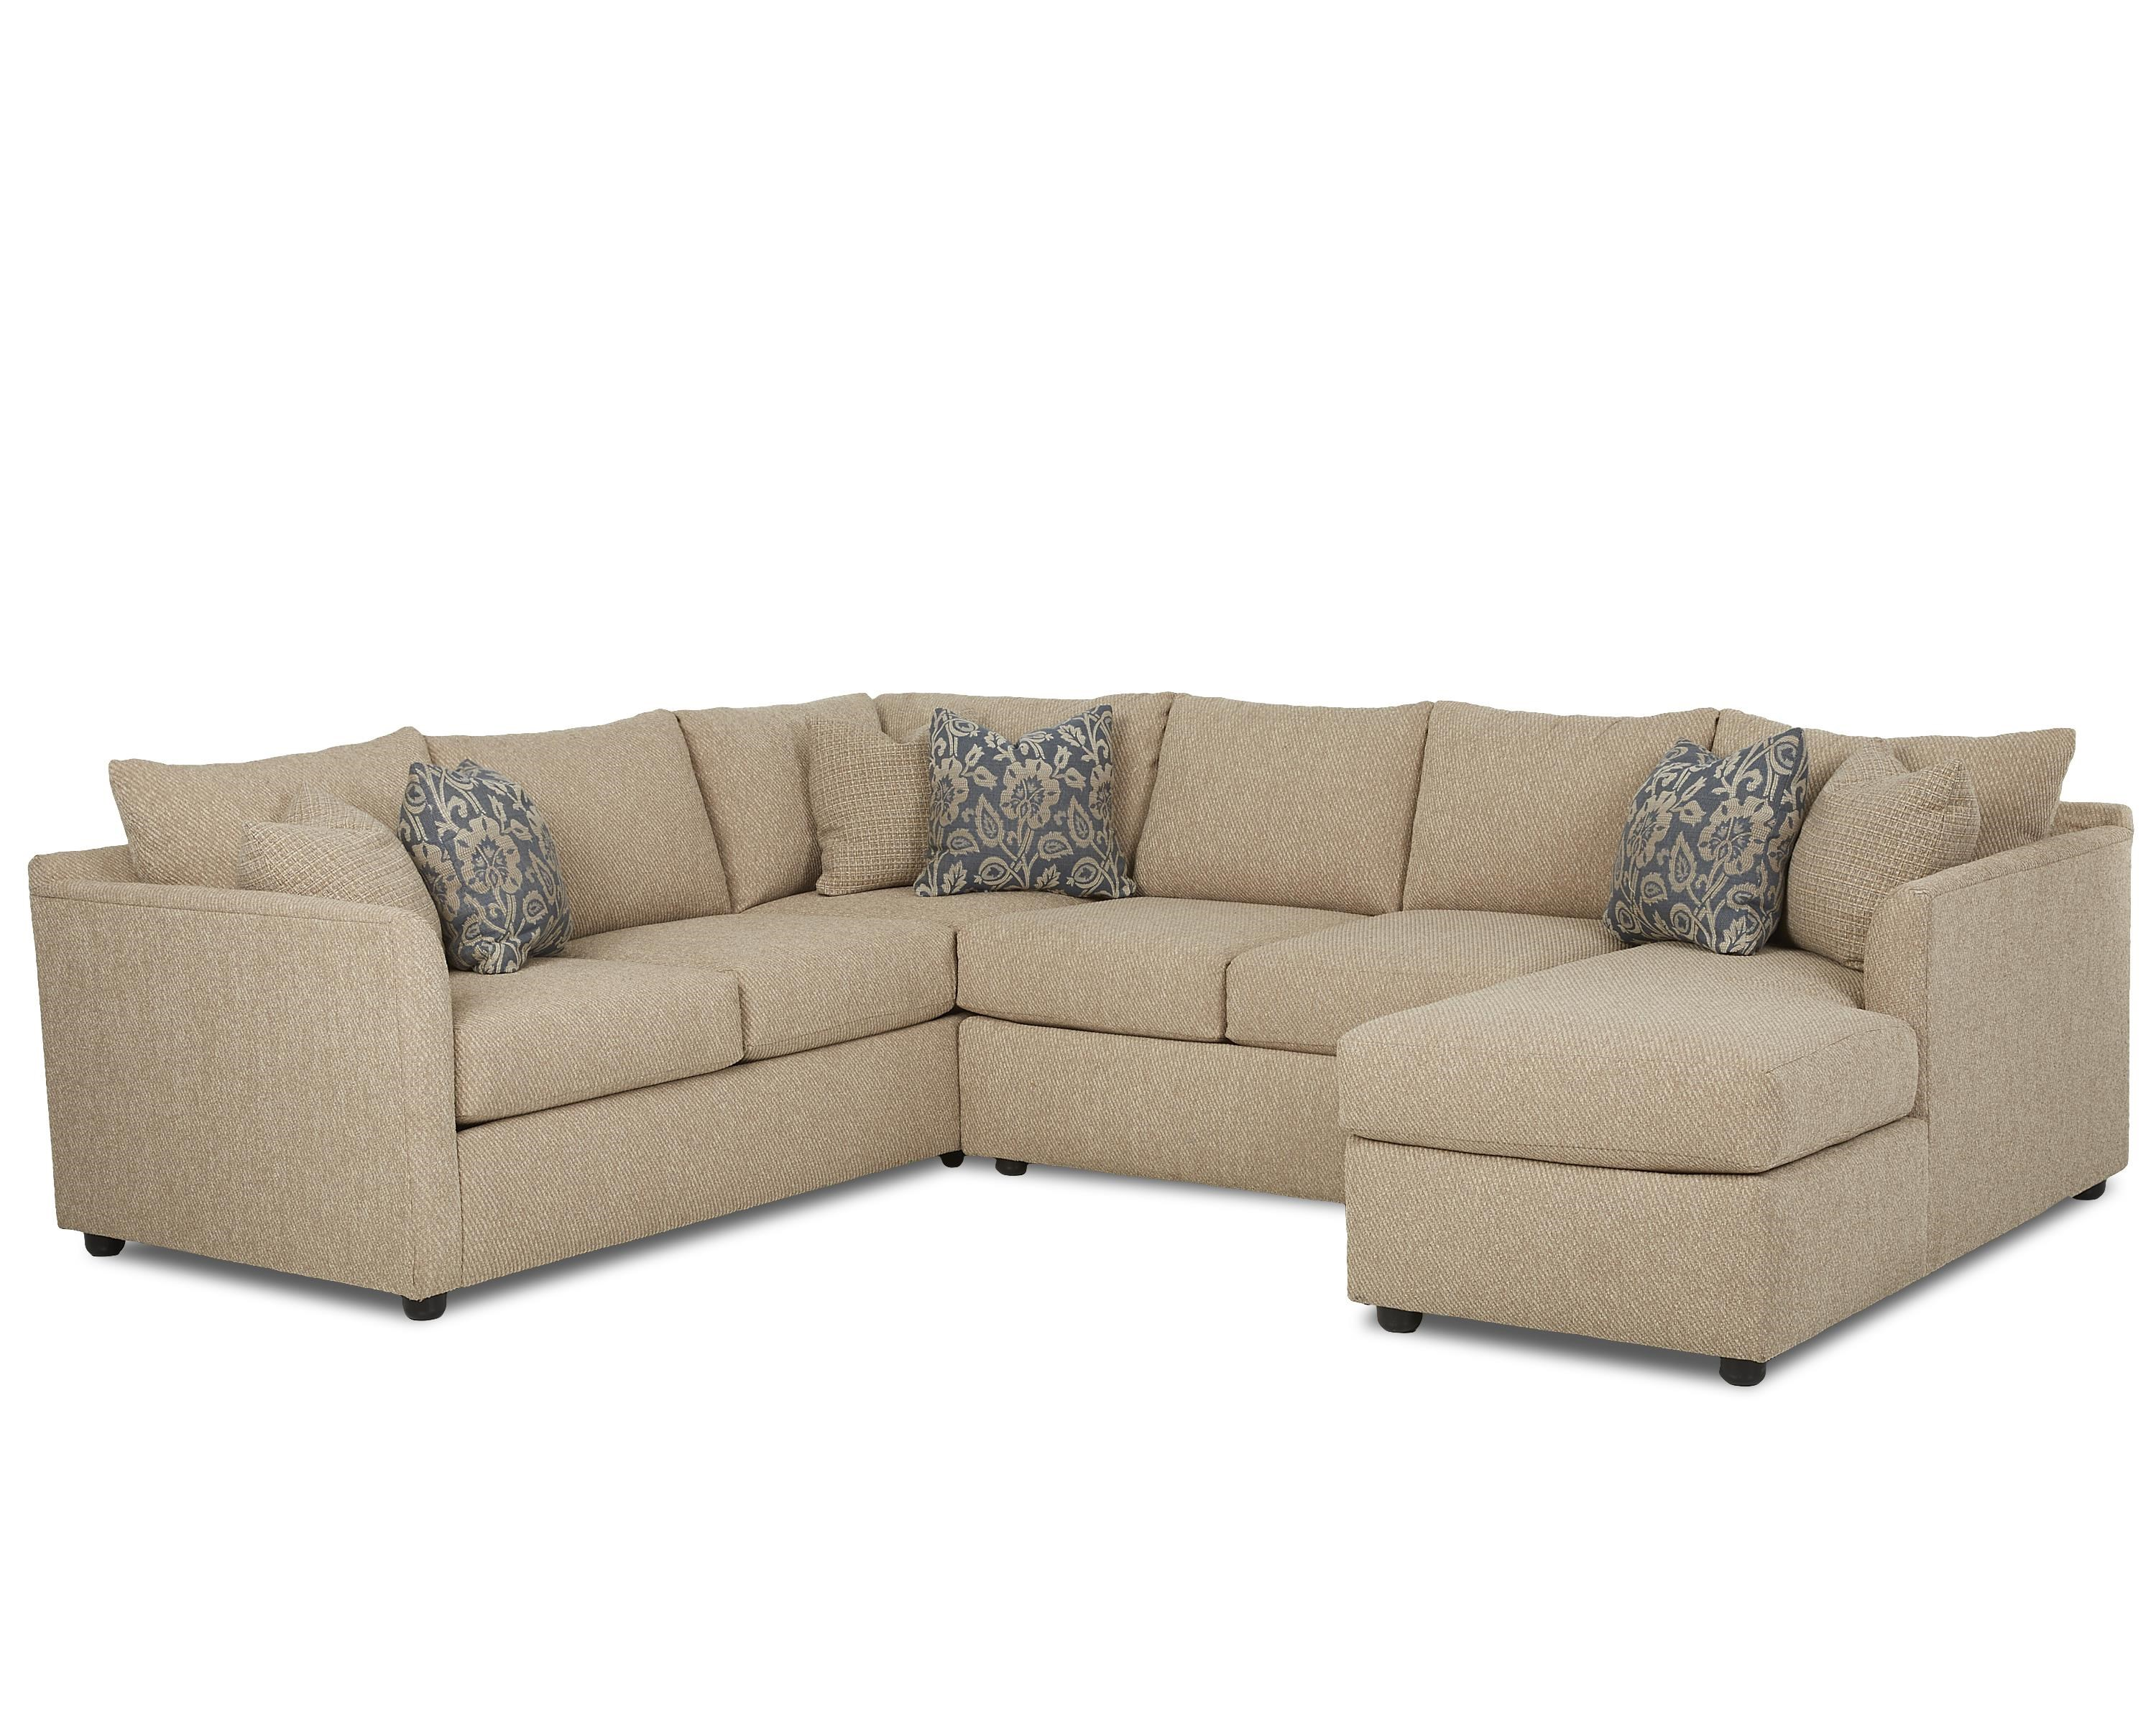 ballard designs leather sofa